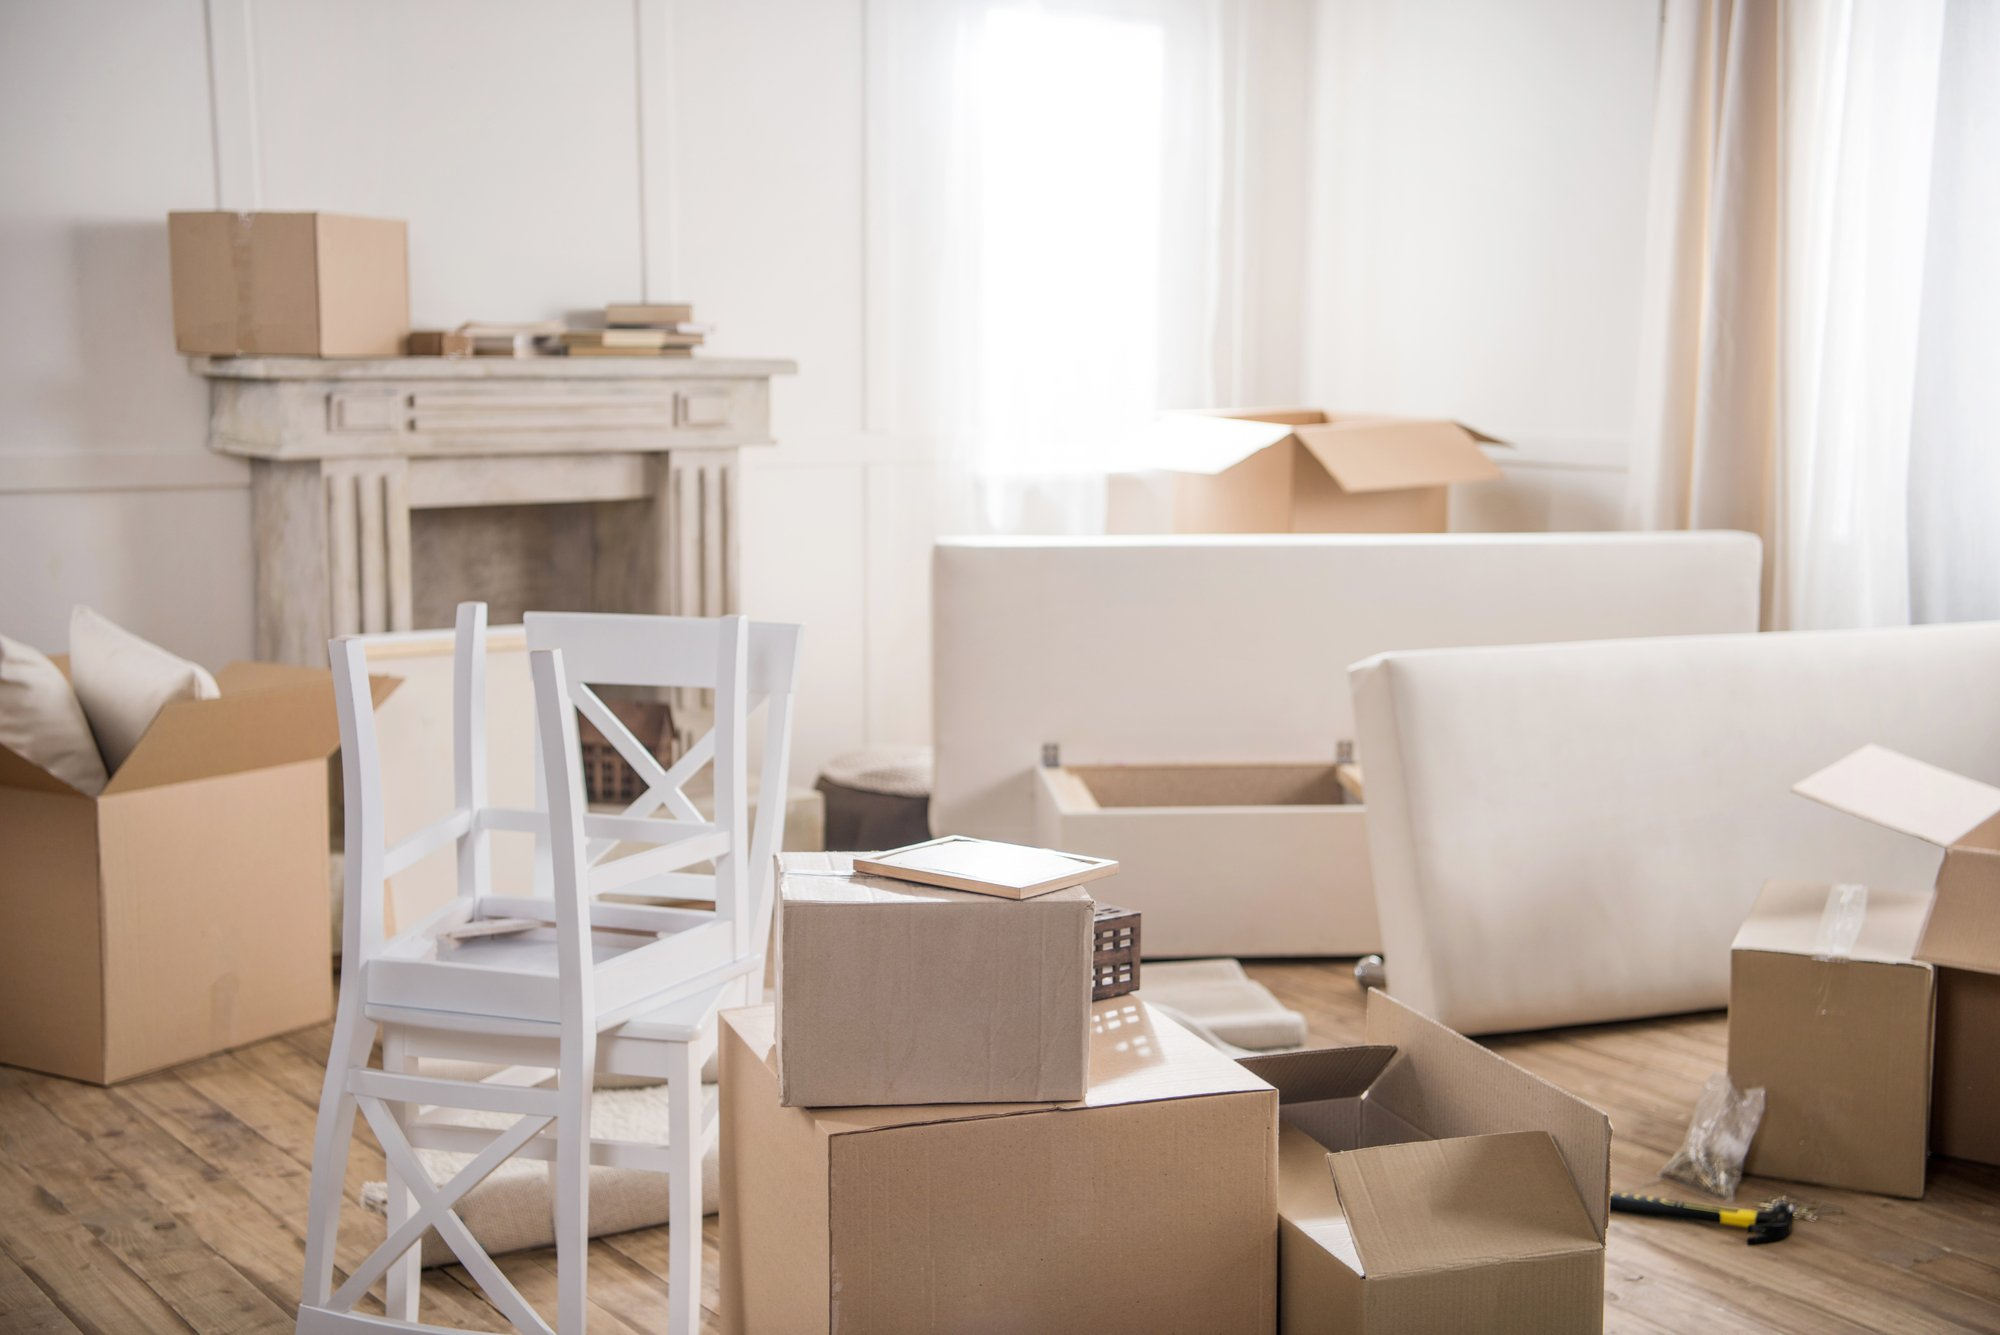 6 Ways to Stay Organized When Moving to a New Home